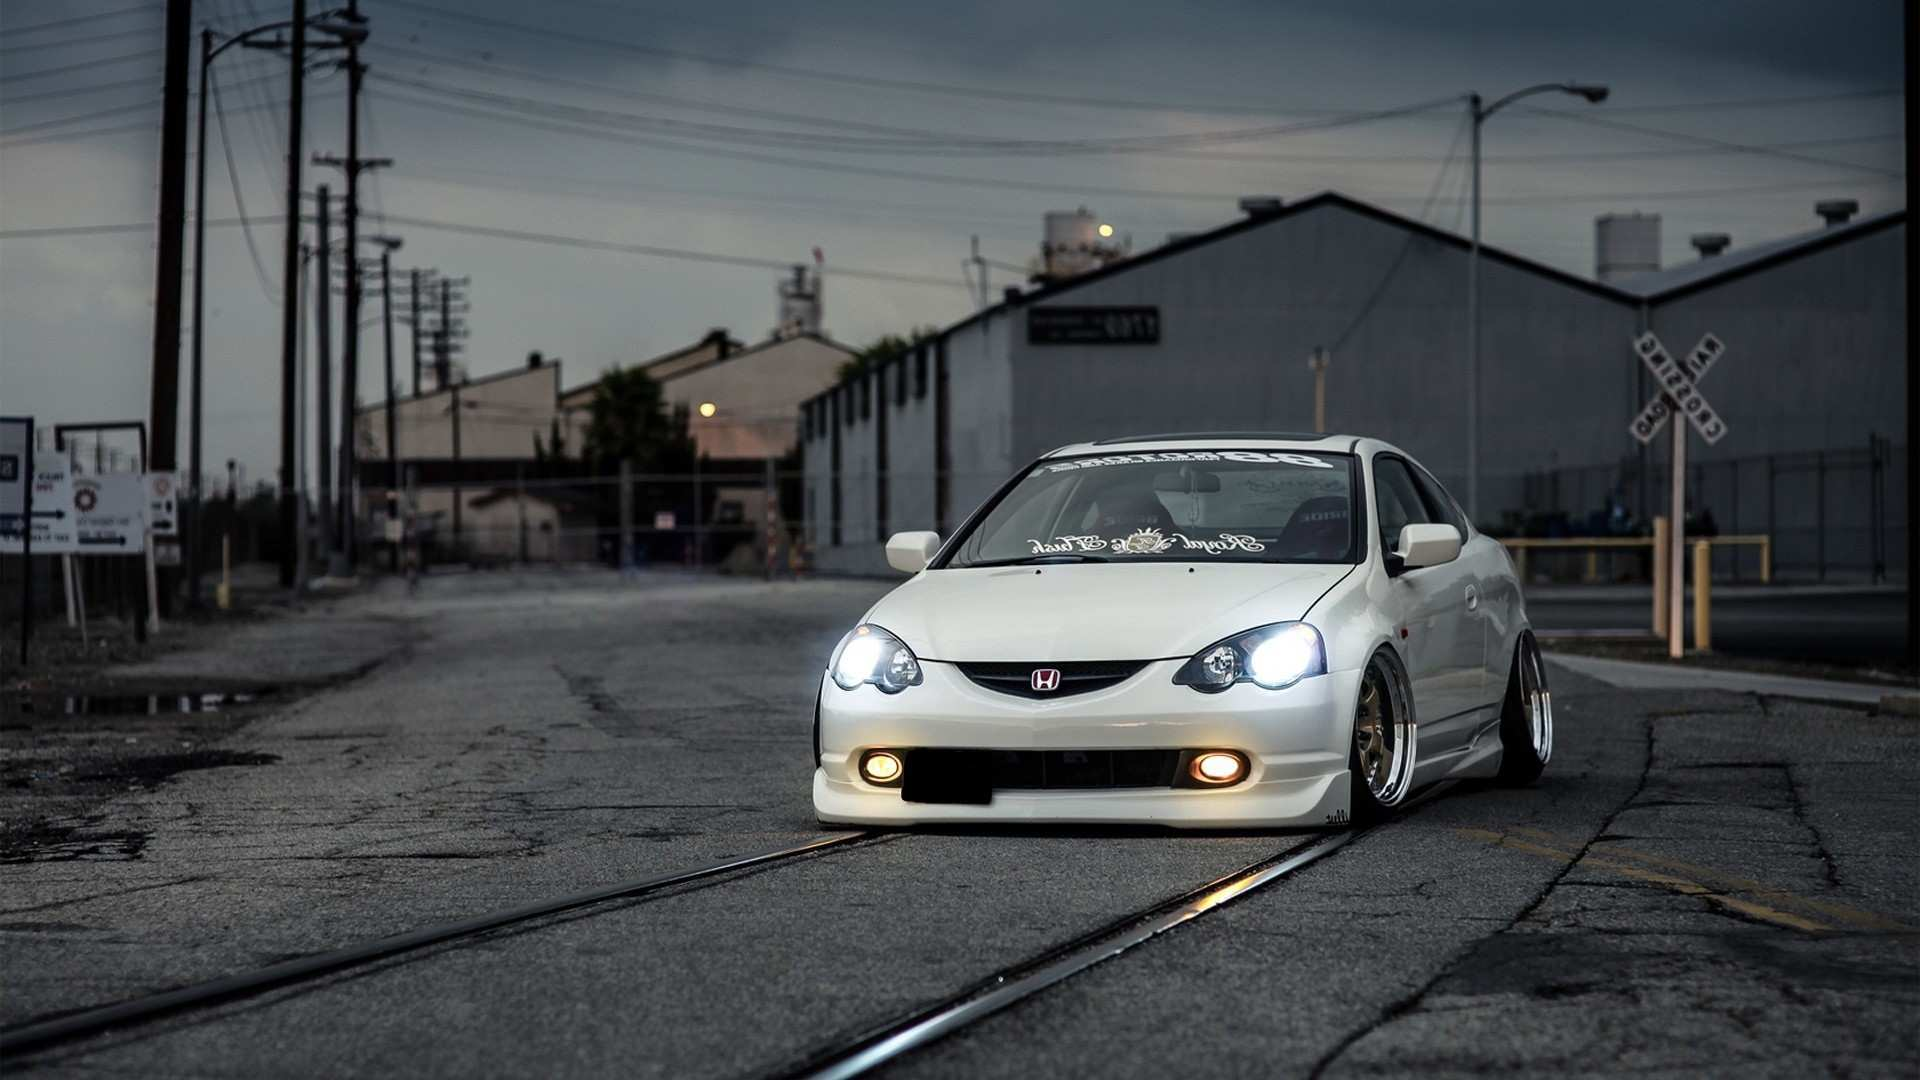 35 All New Acura Rsx Wallpaper Exterior with Acura Rsx Wallpaper